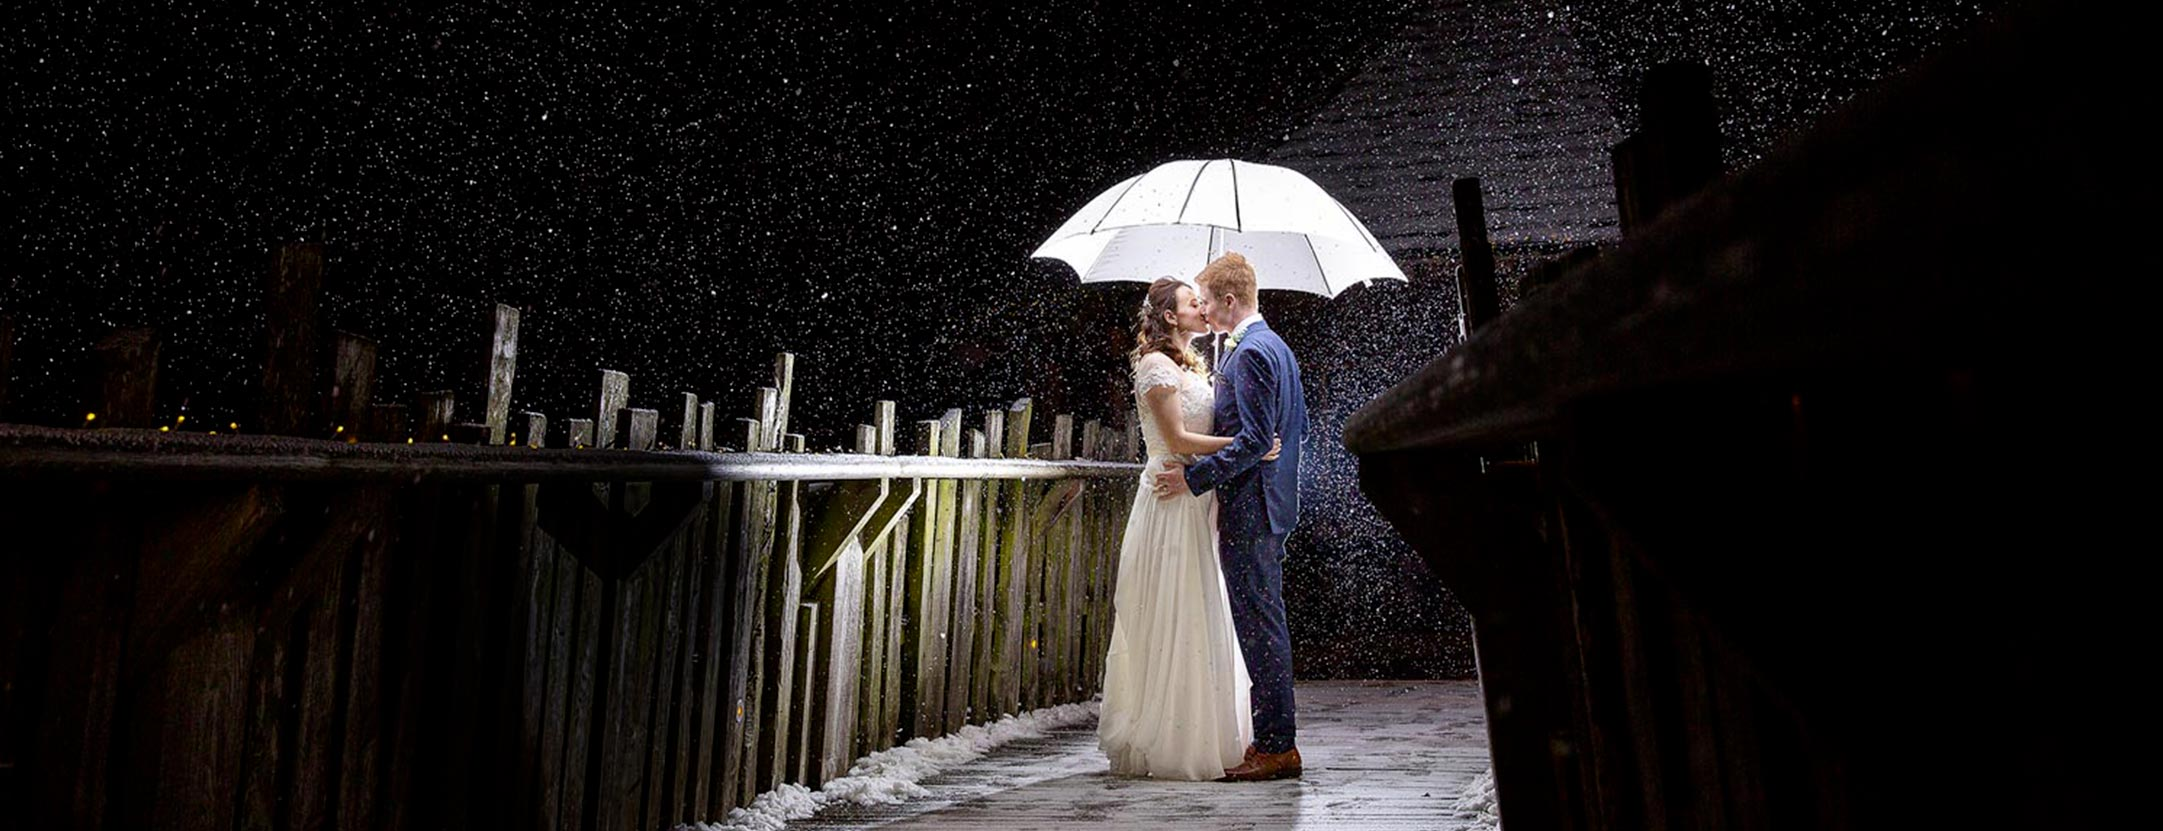 Wedding couple kissing under brolly while its snowing